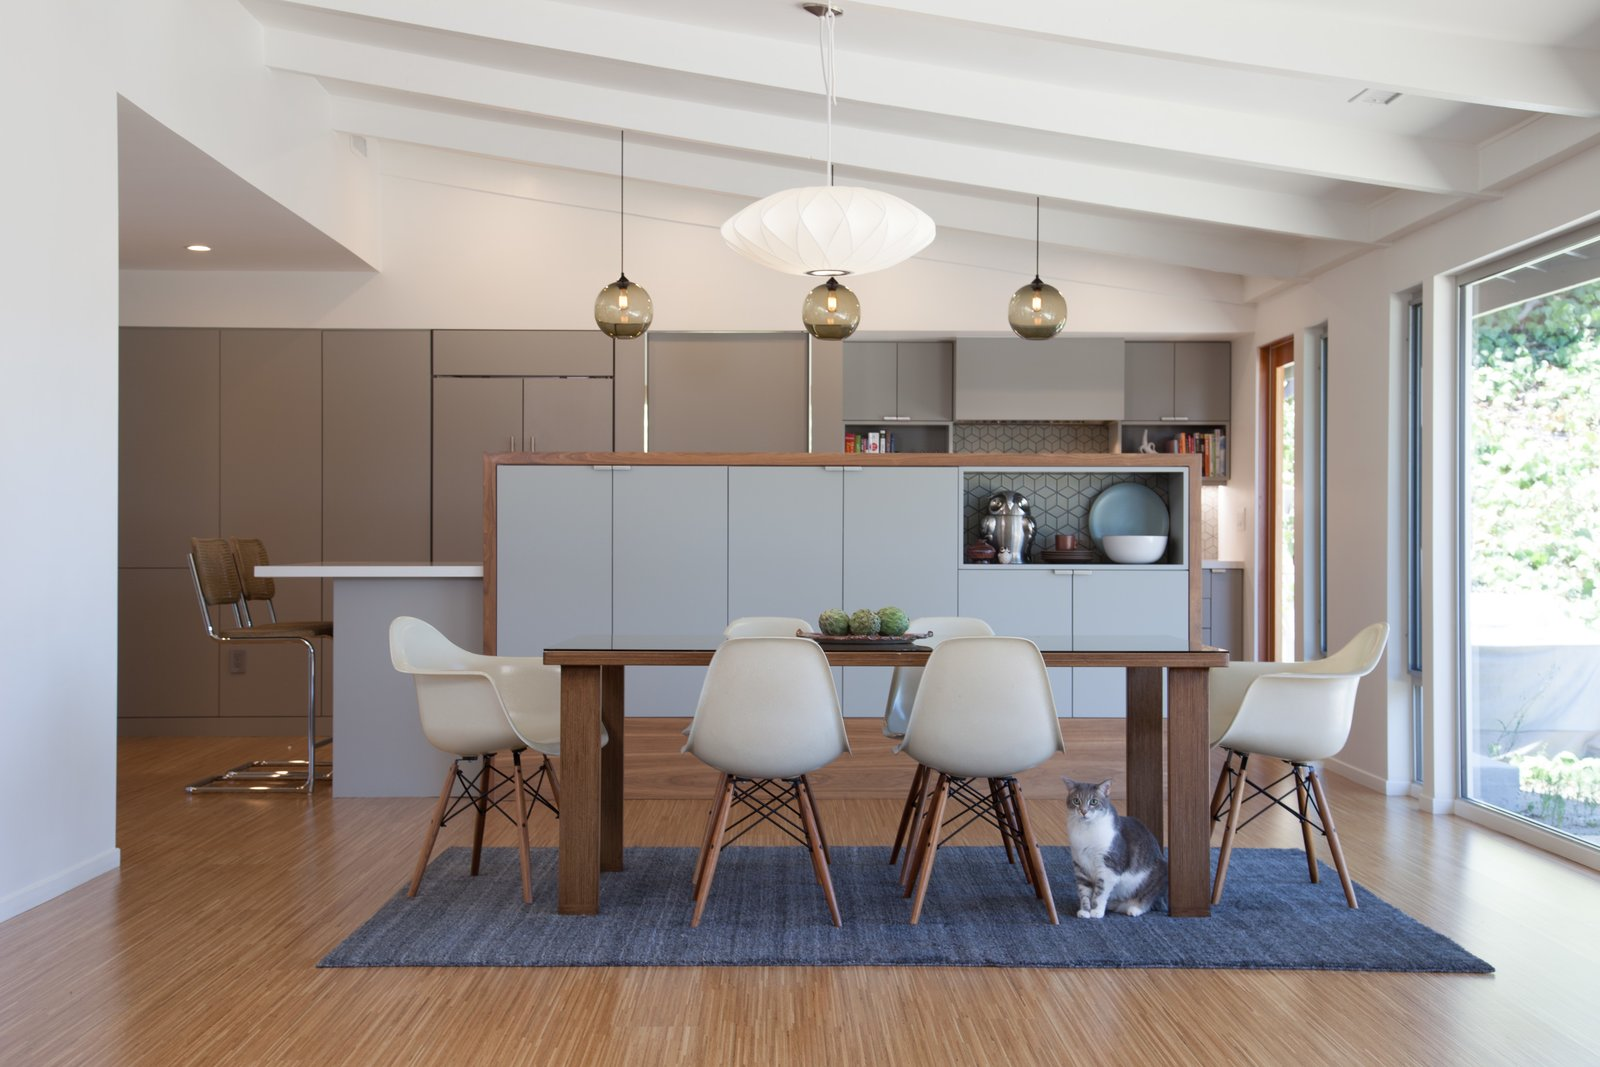 Pinterest Inspired Home Includes Niche Modern Kitchen Pendant Lights - Photo 1 of 5